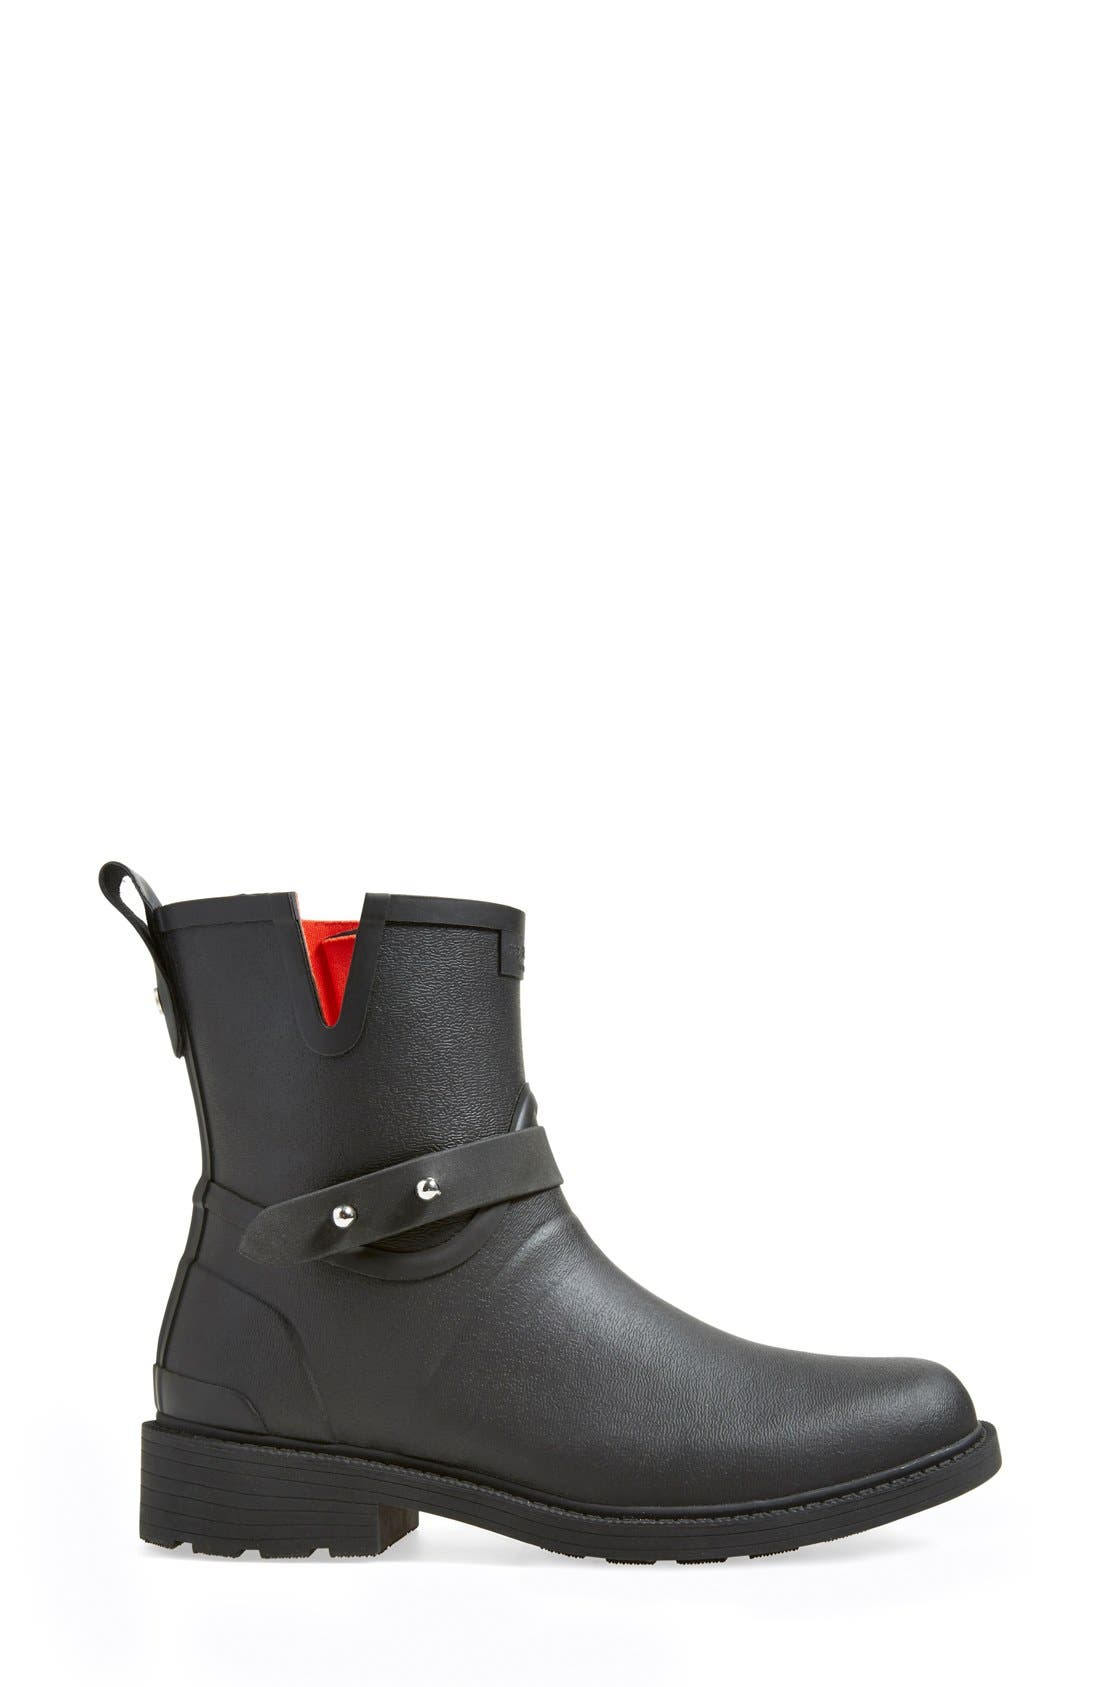 Moto Rain Boot,                             Alternate thumbnail 4, color,                             BLACK RUBBER